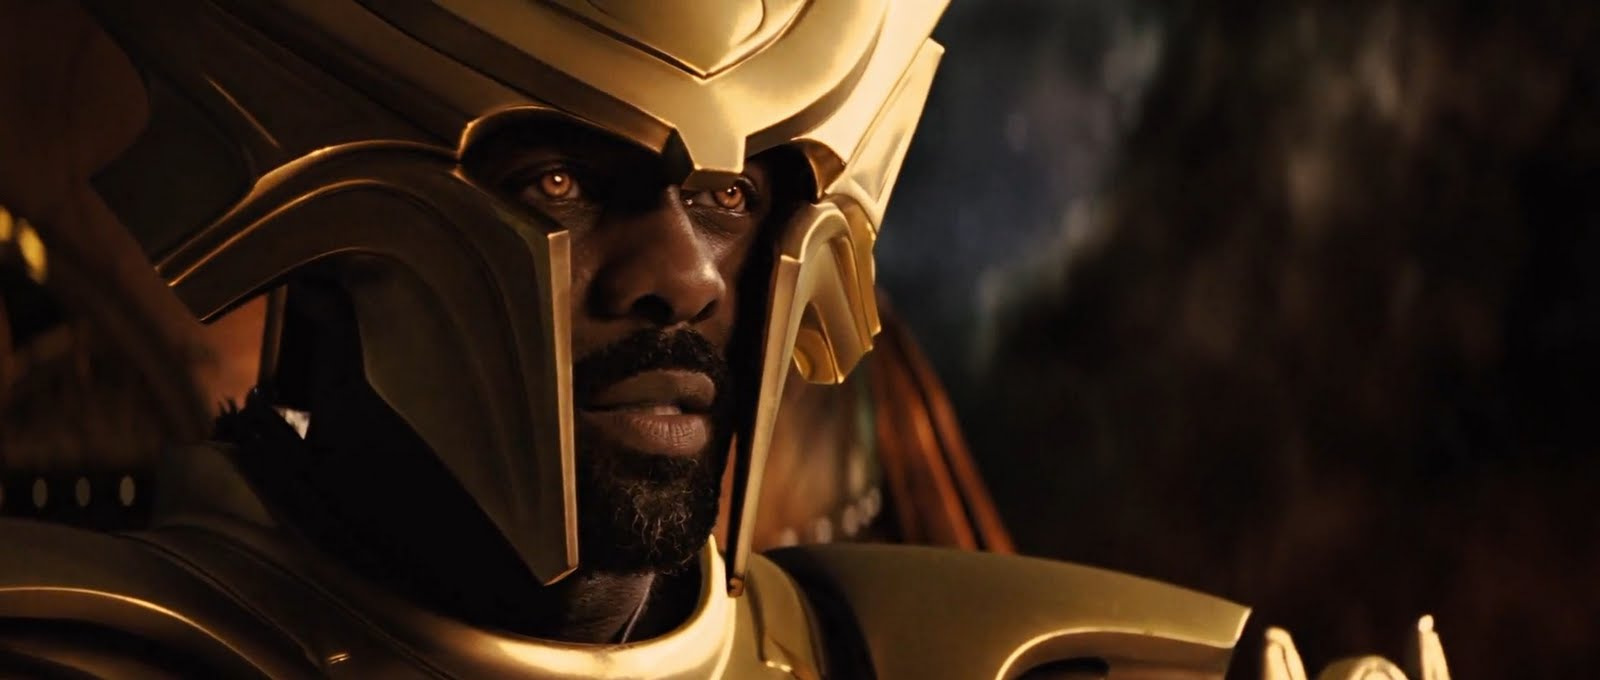 Heimdall (Idris Elba), Avengers: Infinity War character some fans have speculated has the power of the Soul Stone (Marvel)